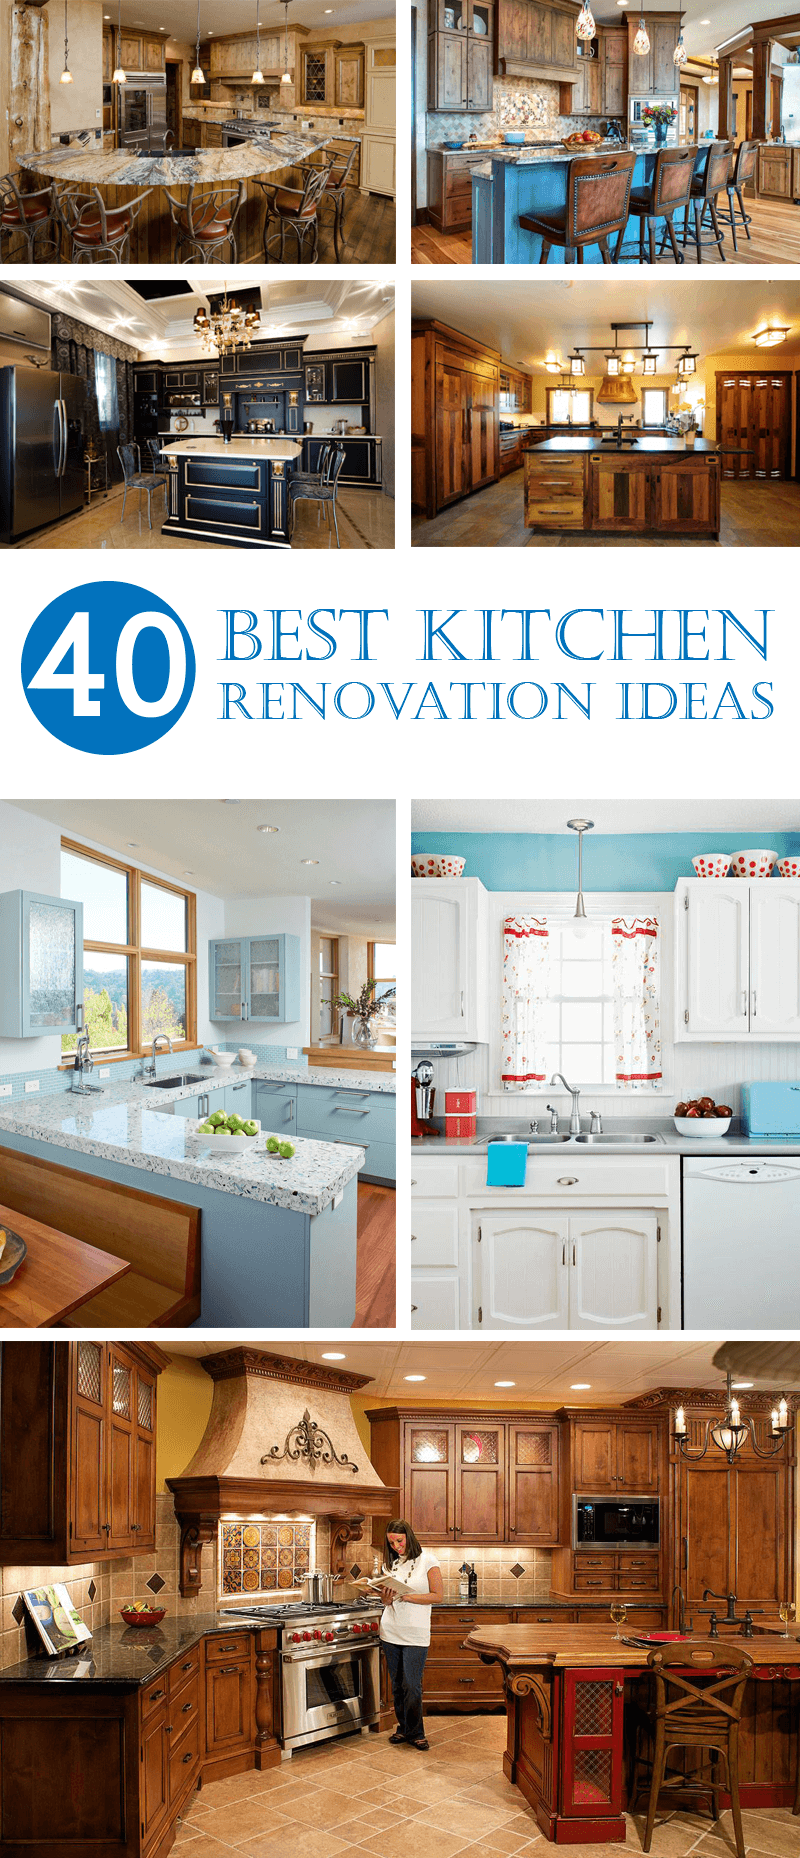 best kitchen renovation ideas